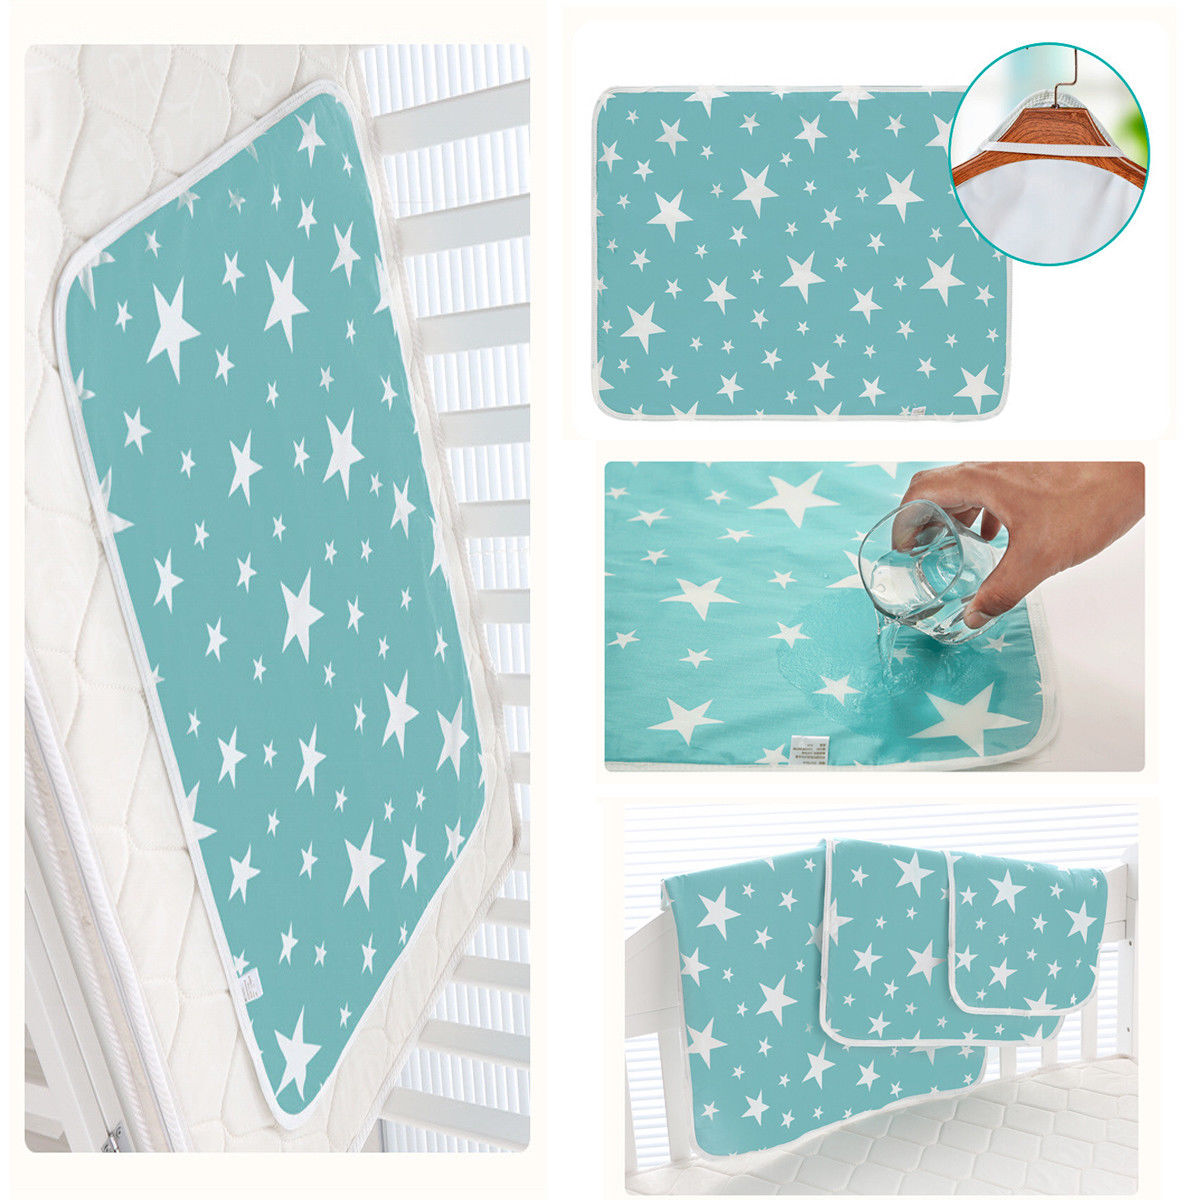 Washable Newborn Baby Mattress Breathable Supplies Waterproof Crib Sheet Urine Supply Mattresses